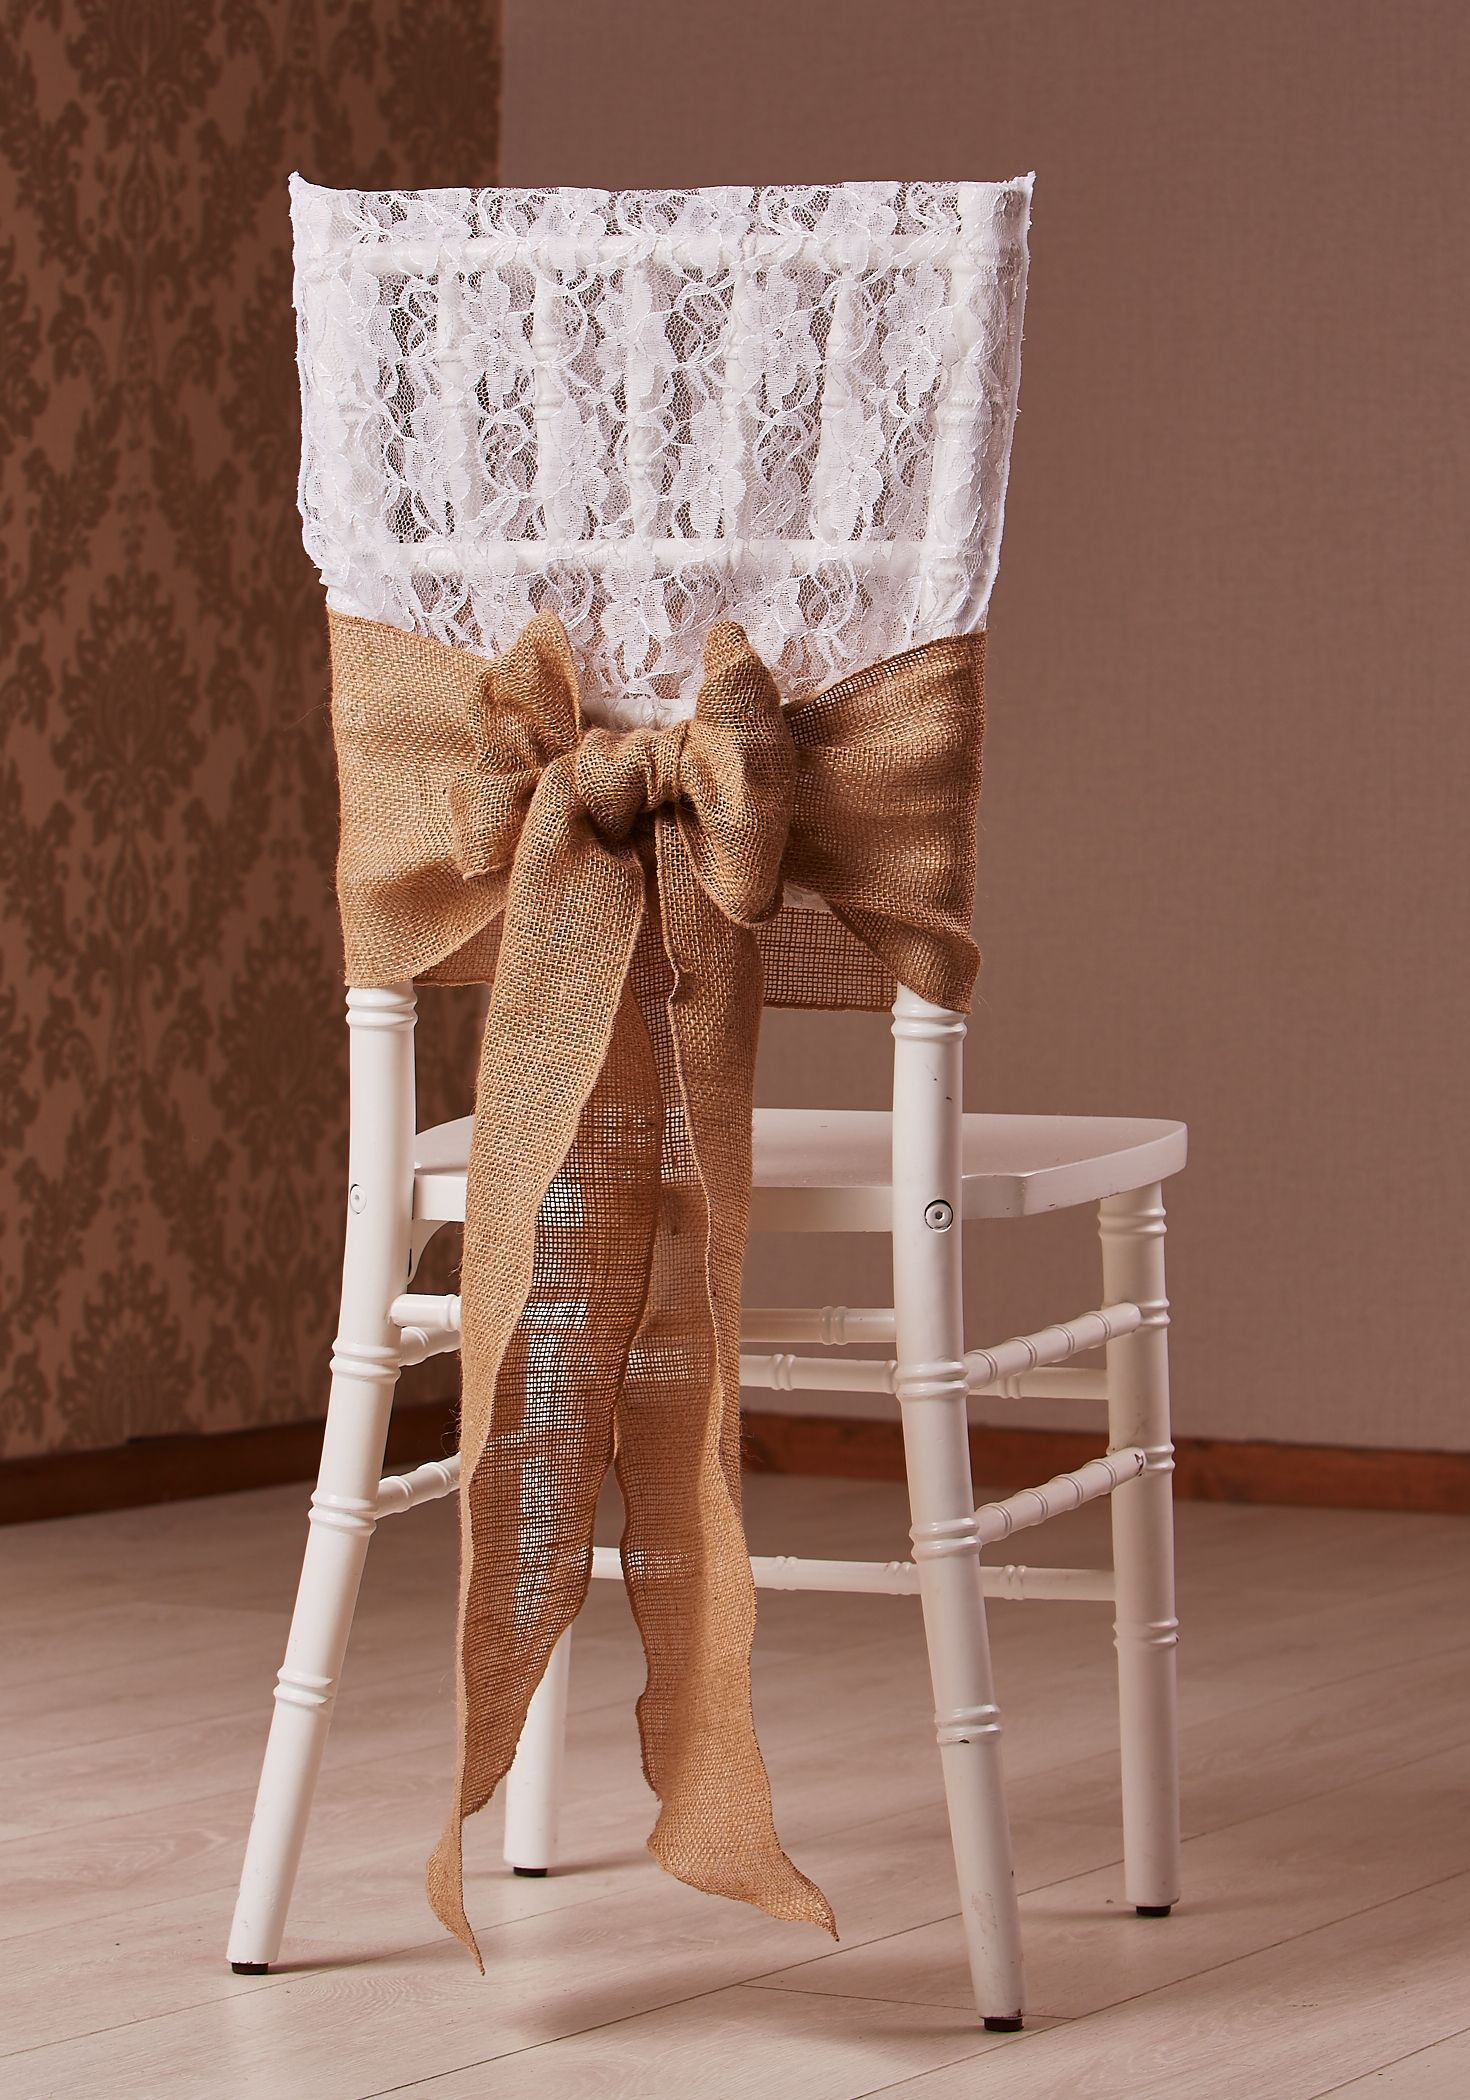 LACE AND HESSIAN CHAIR CAP AND BOW ON CHIAVARI CHAIR STYLED BY